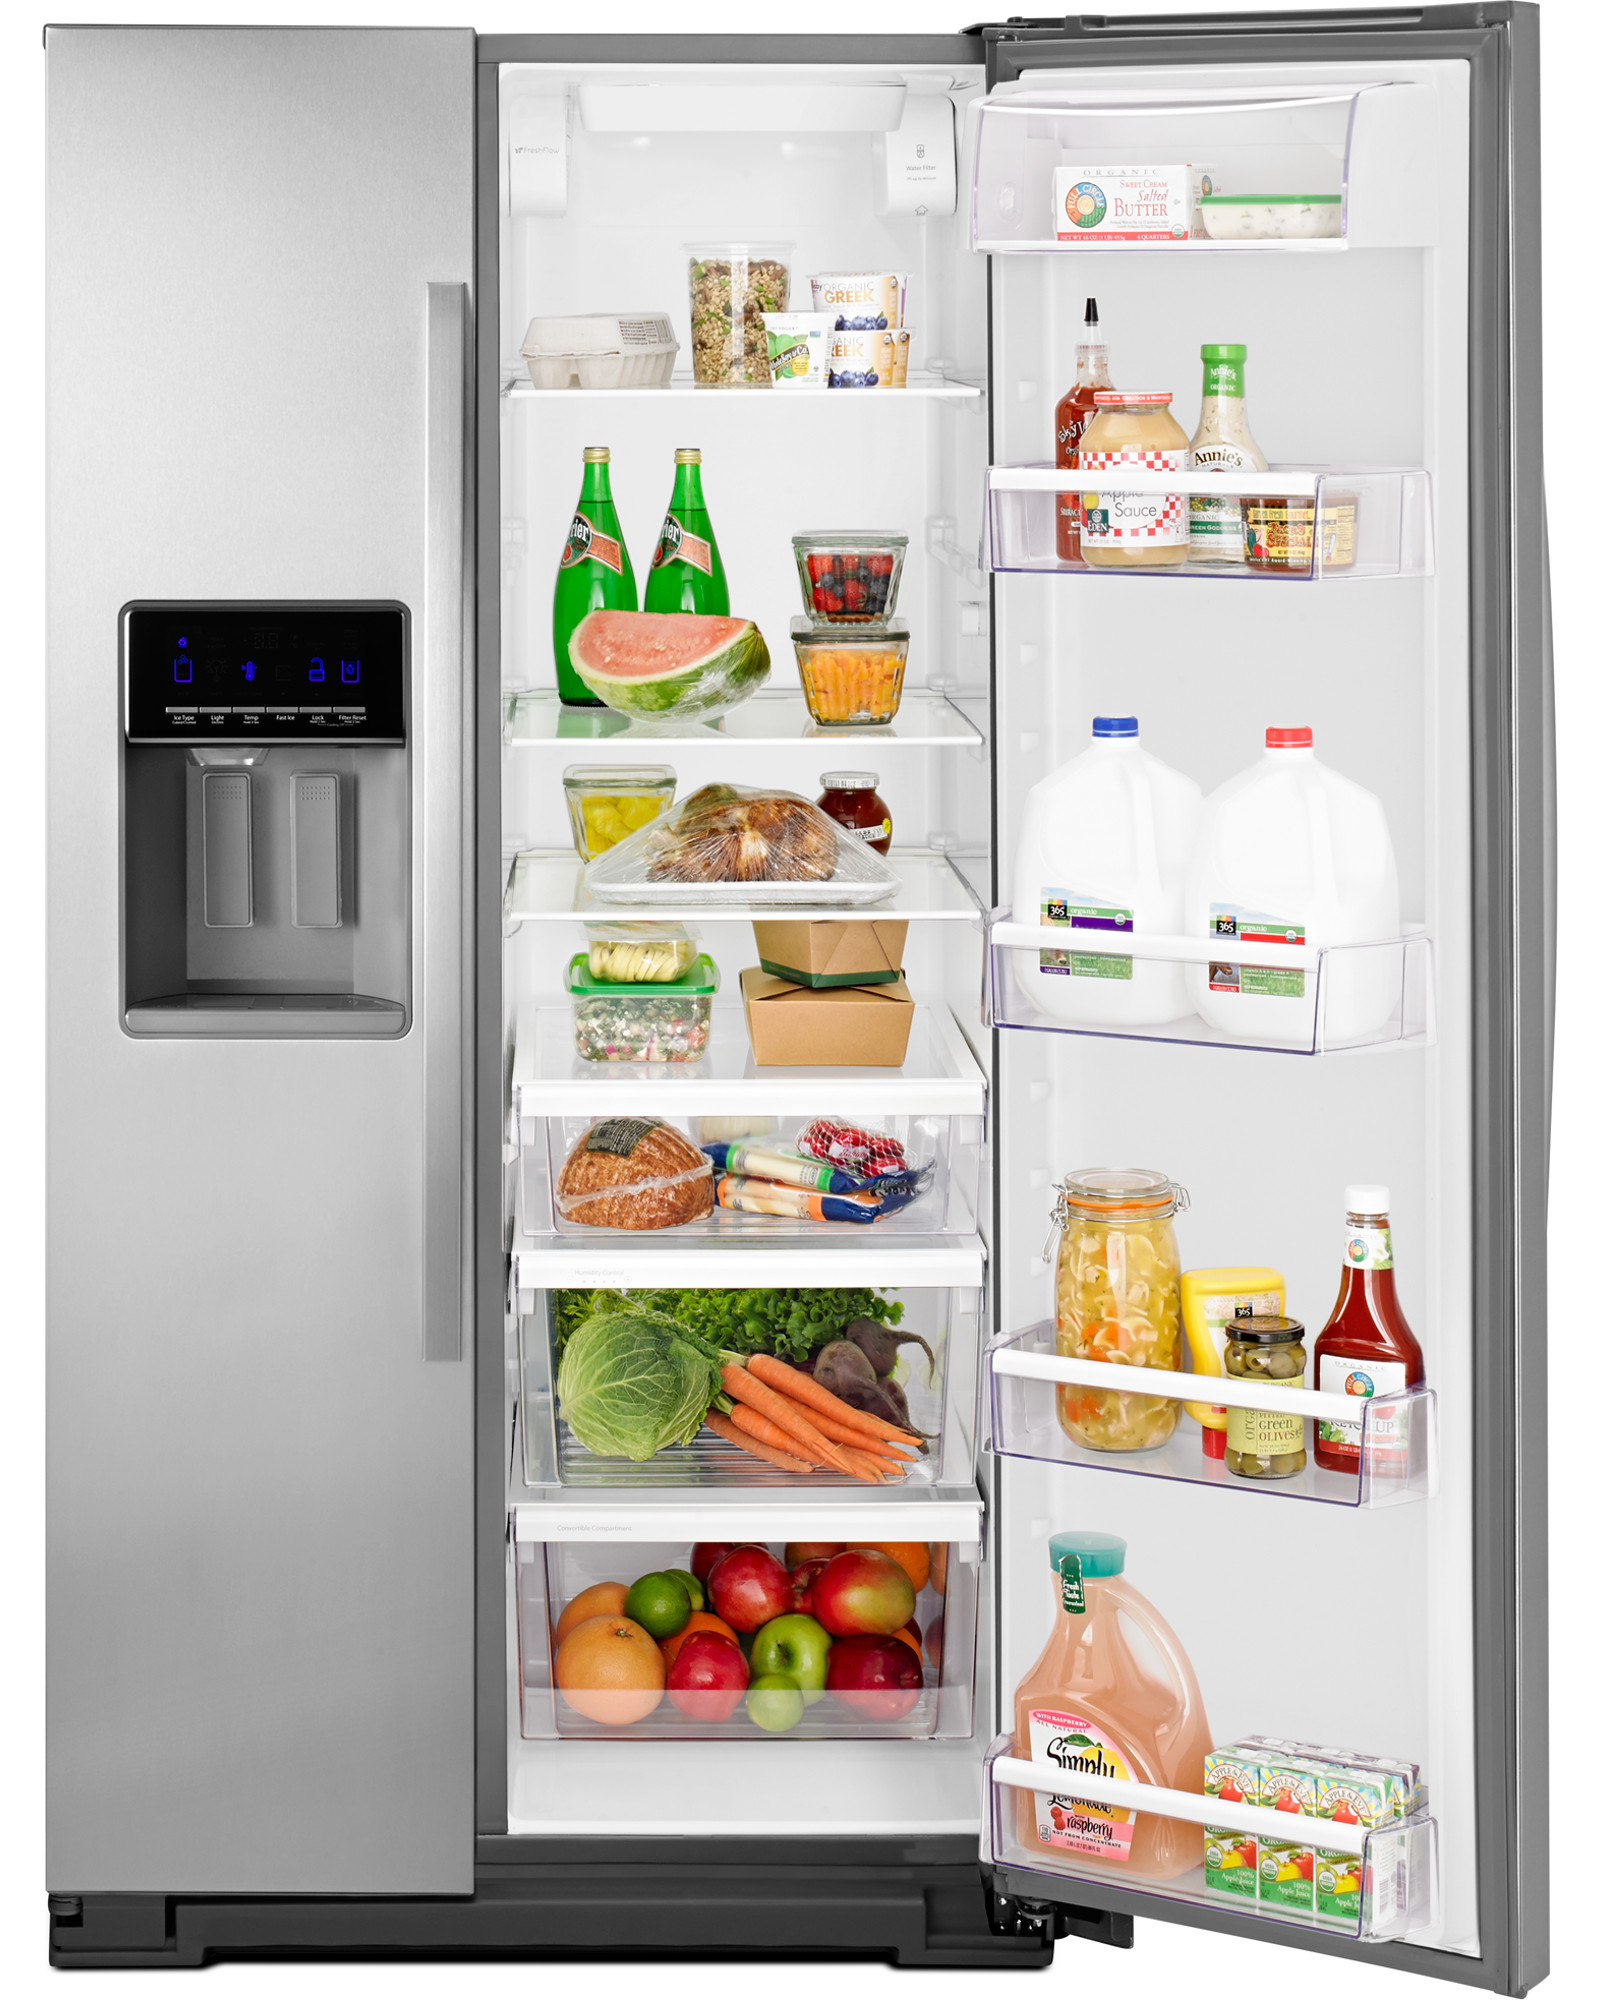 Whirlpool WRS571CIDM 21 cu. ft. Counter-Depth Side-by-Side Refrigerator - Stainless Steel